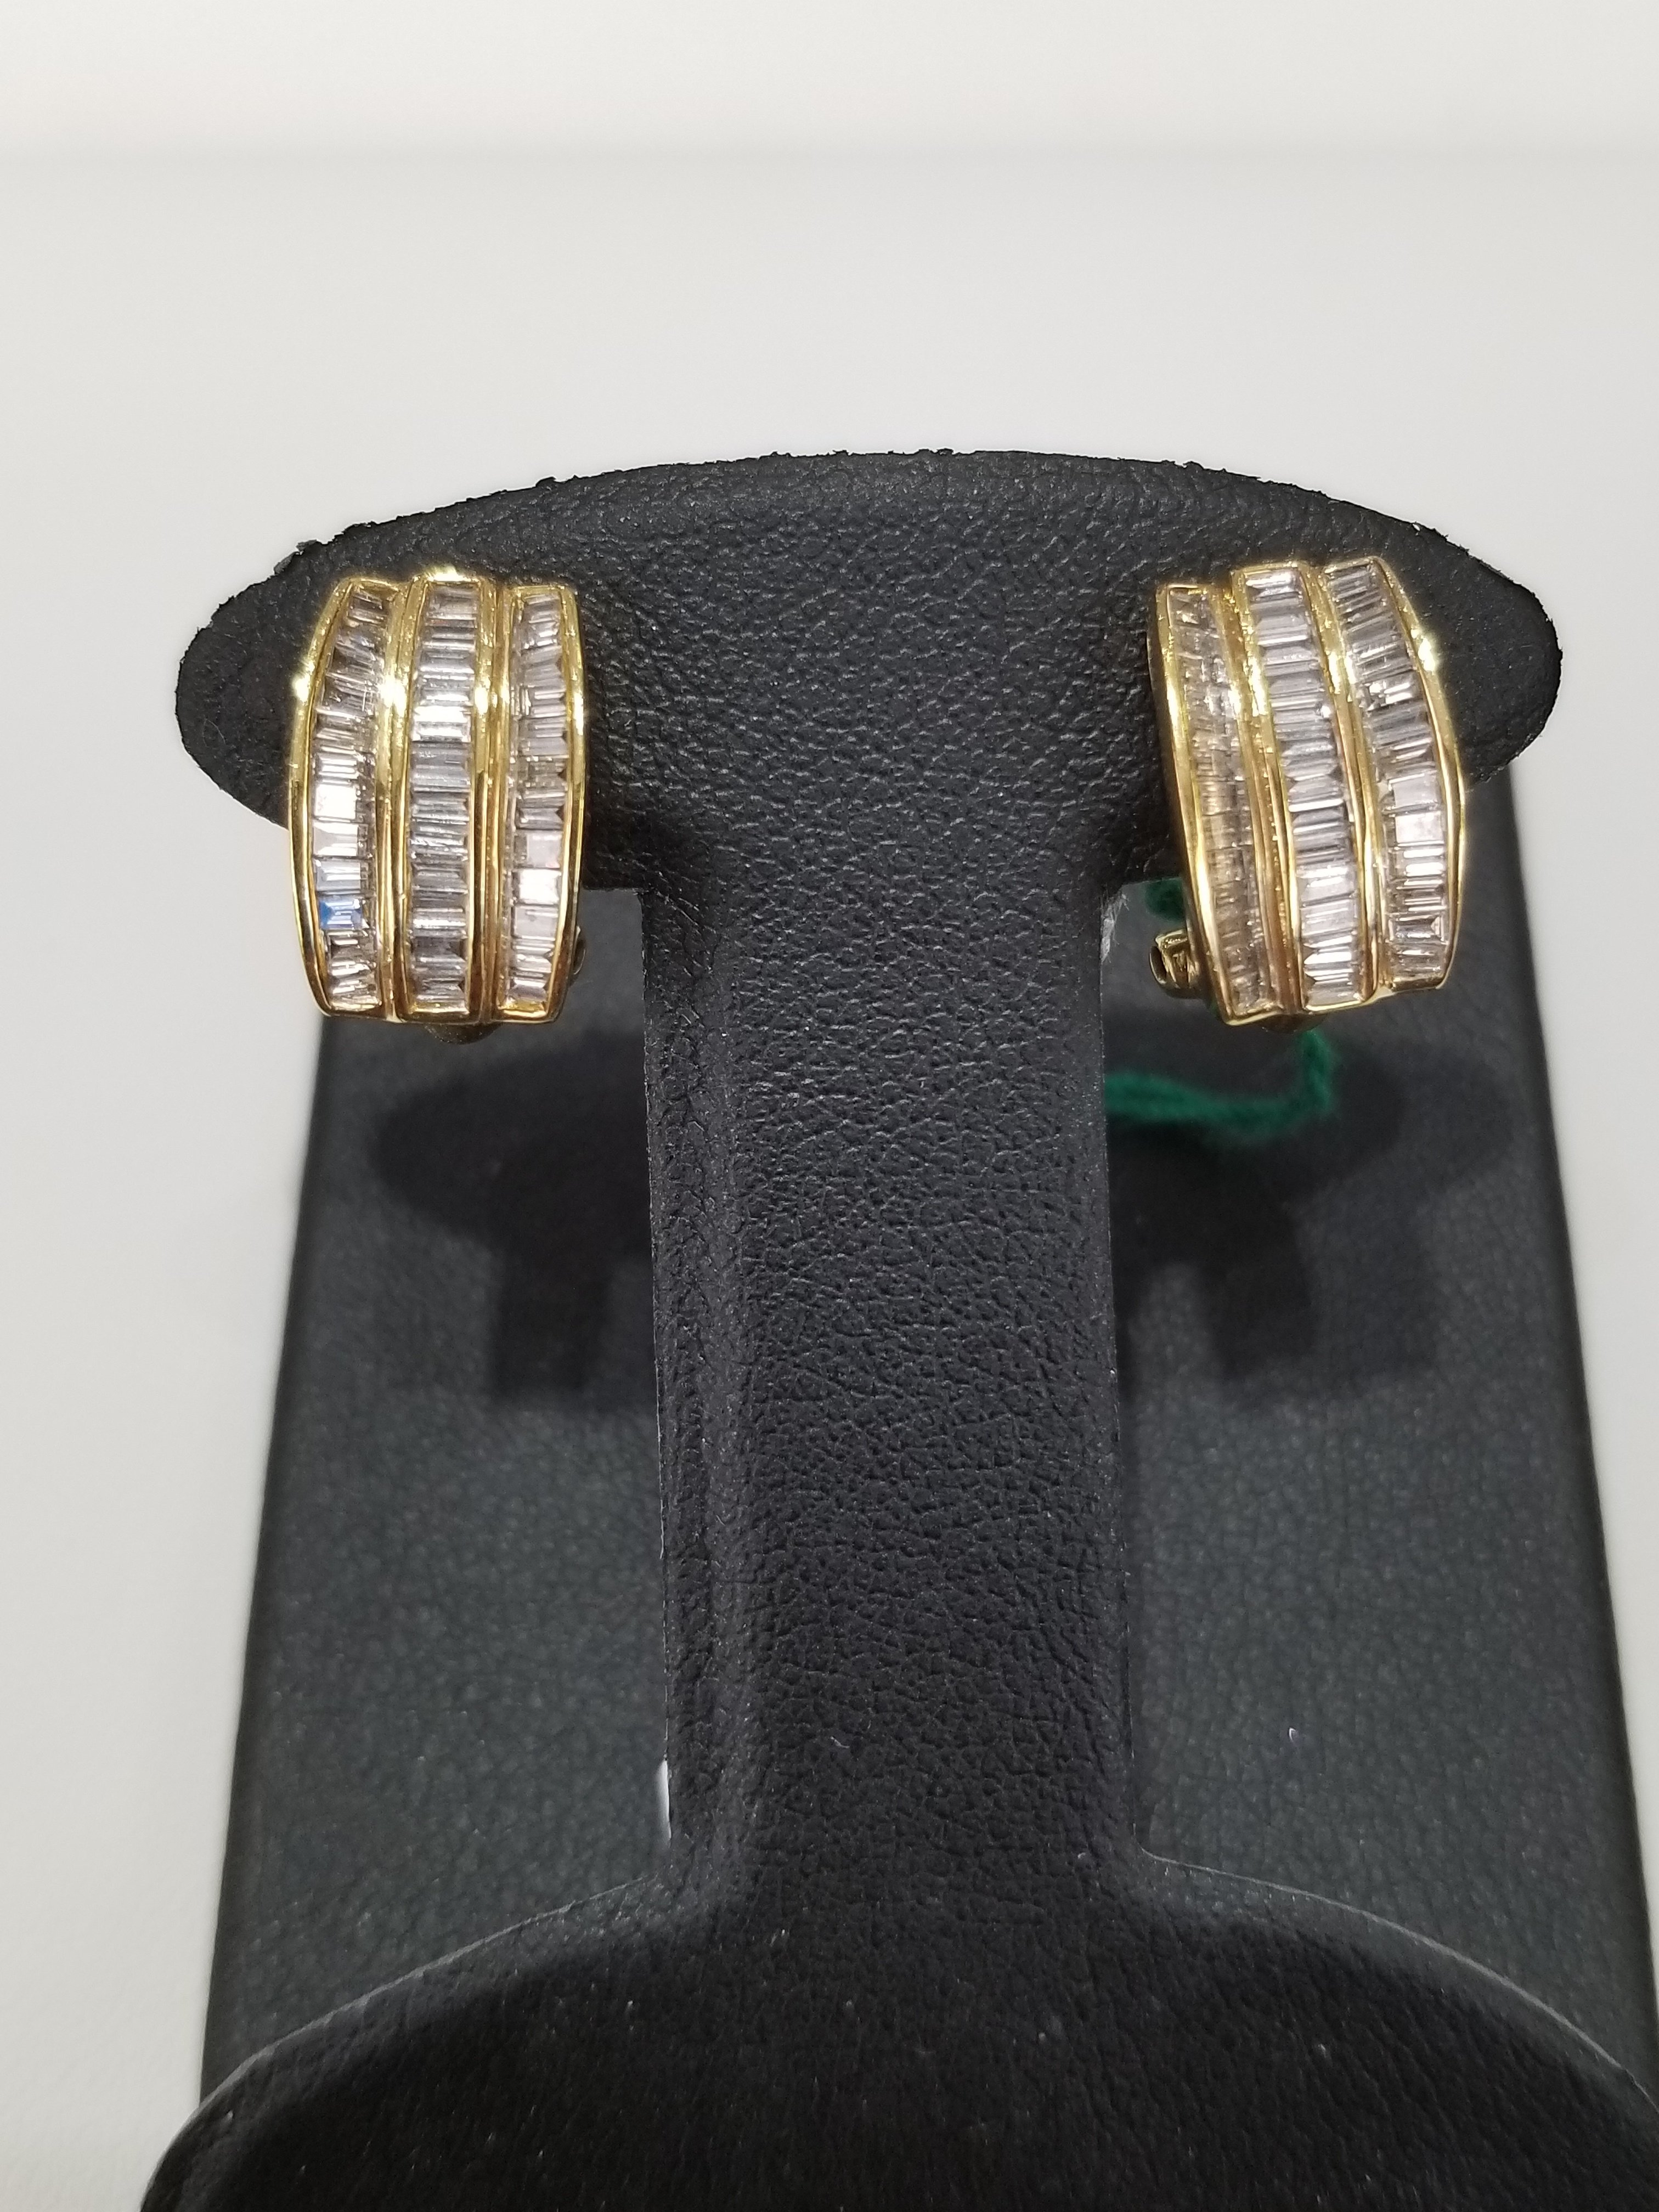 14K Yellow Gold Diamonds: 1.10ct Regular Price $5120 SALE $1395 Ref: TM550